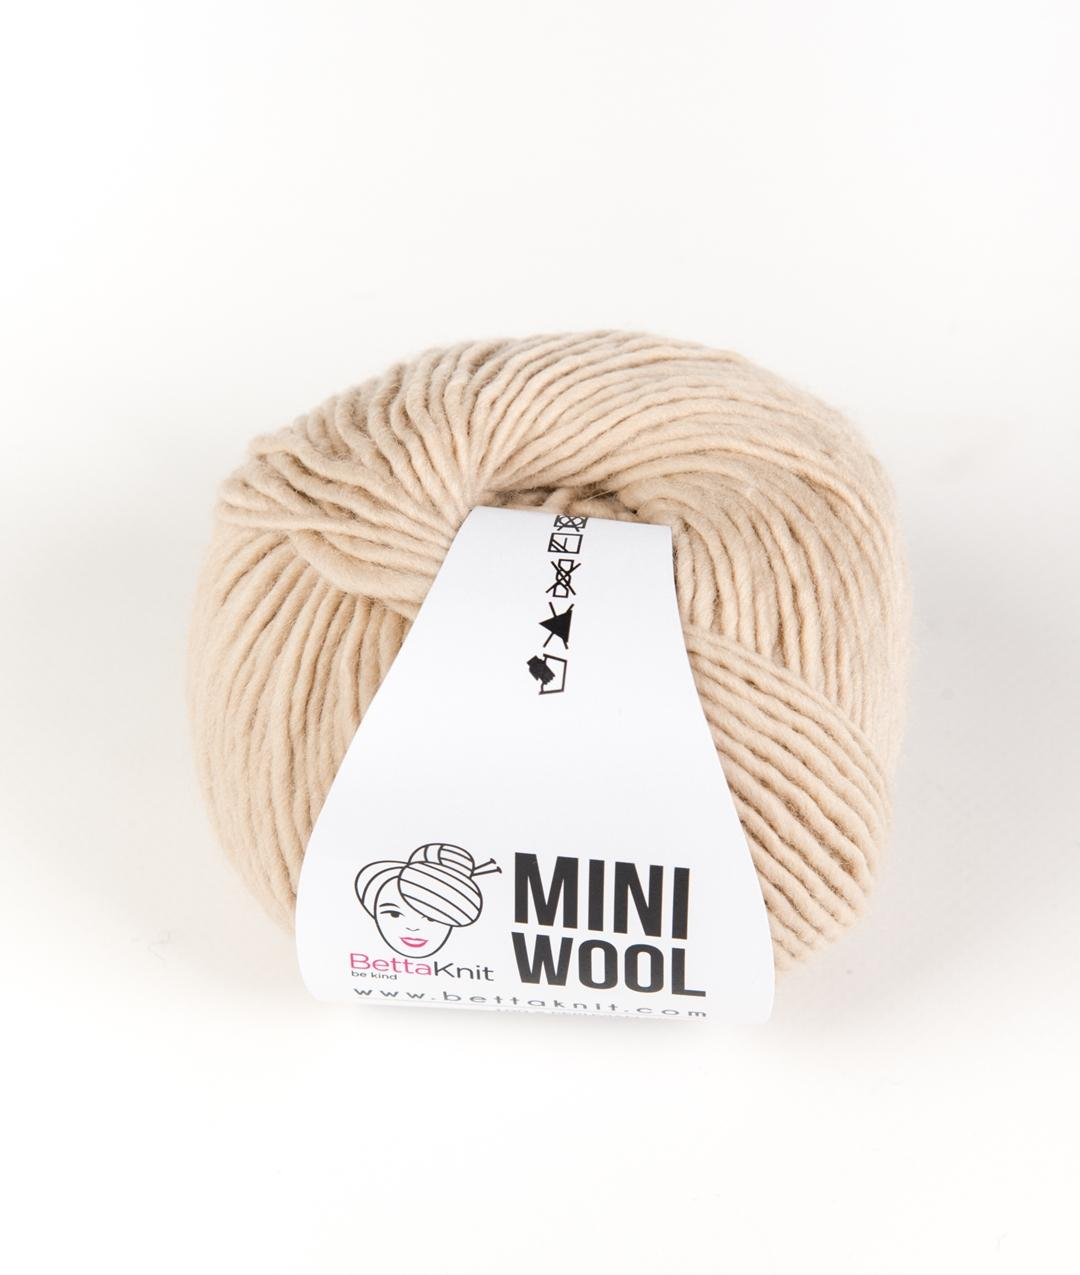 Yarn pack without Needles  - Pack of Yarn - Mini Wool Pack - 20 gomitoli  - 1